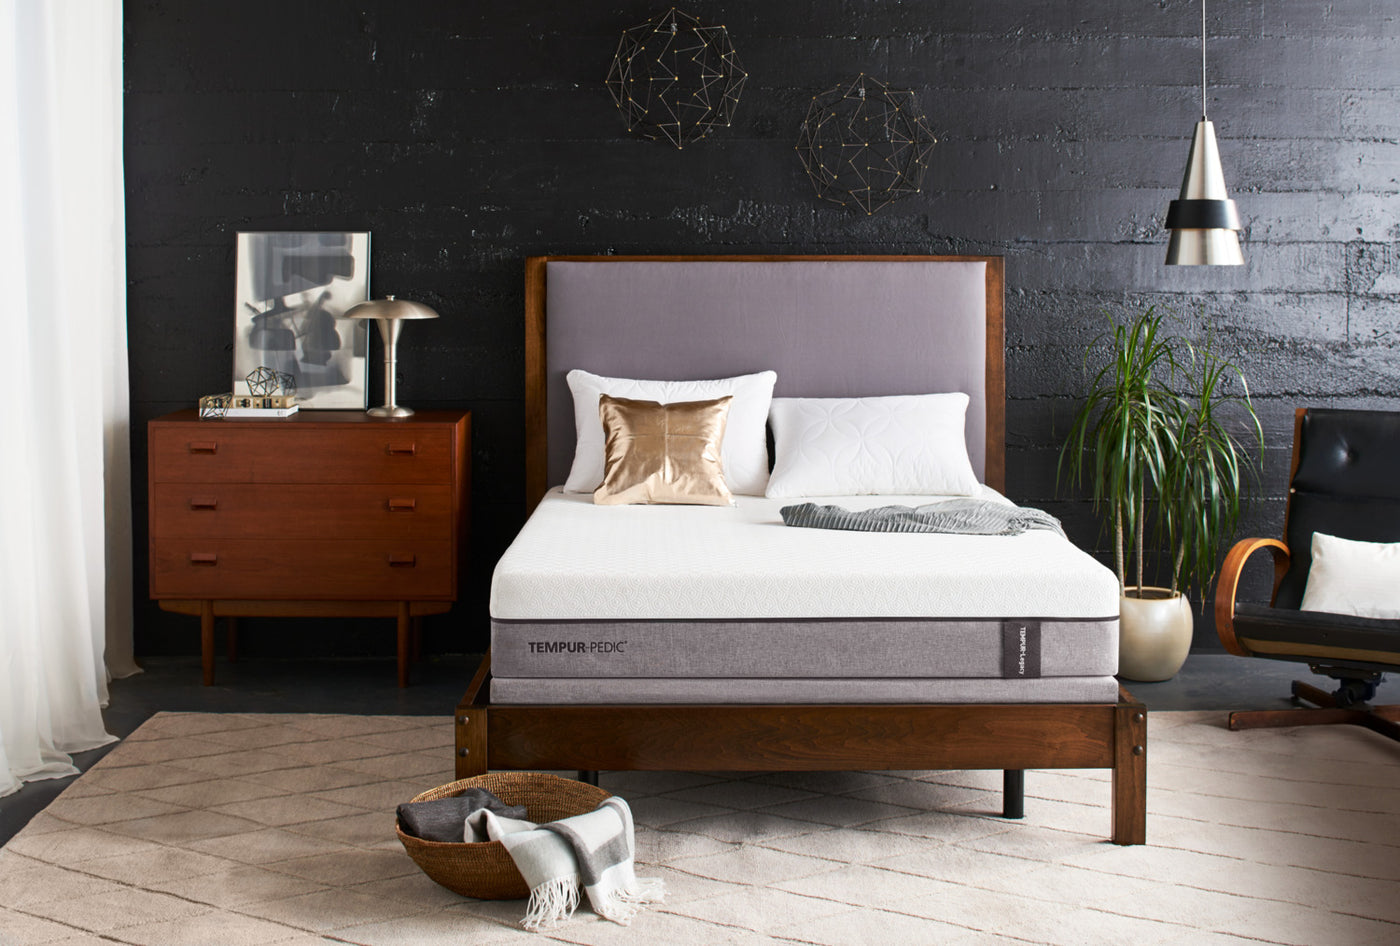 Tempur Legacy Limited Edition Tight Top King Mattress The Brick